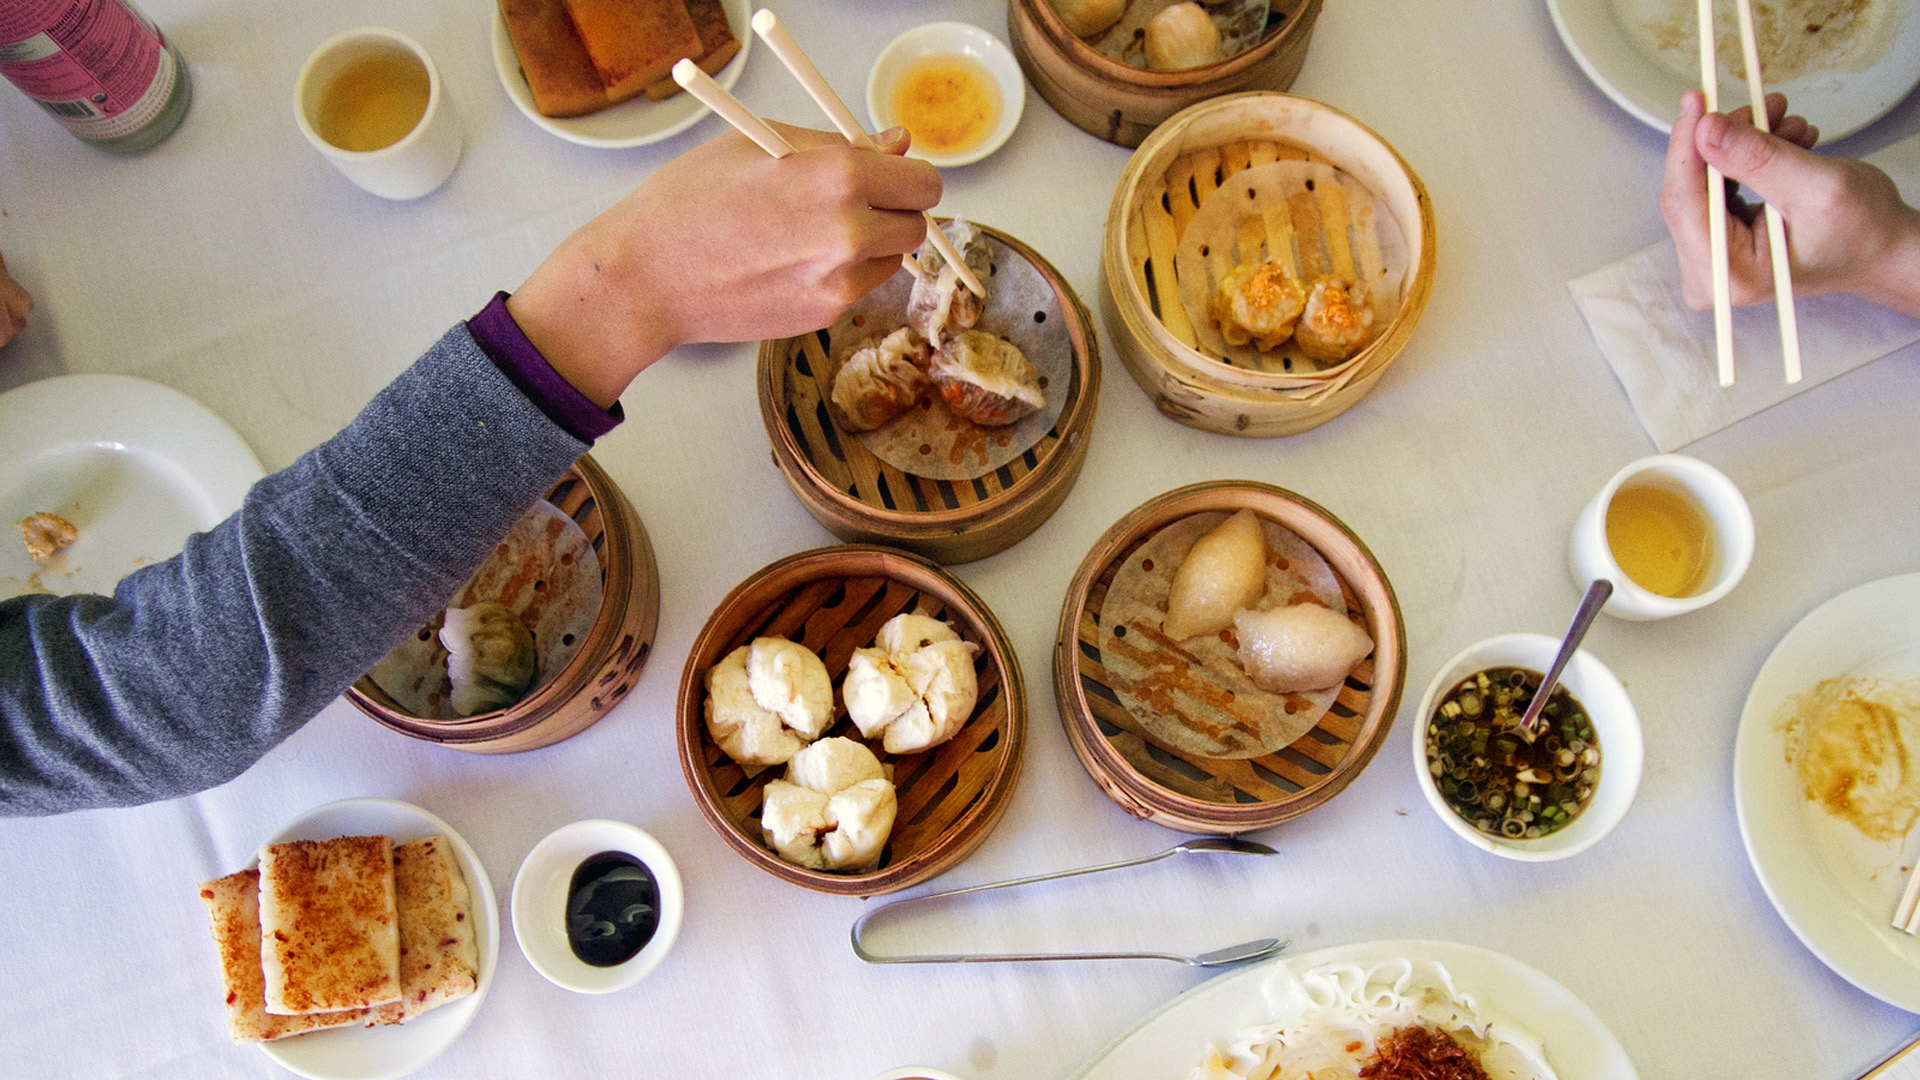 Moscato Food Pairing Advice - try Asian cuisine, dim sum image by roboppy